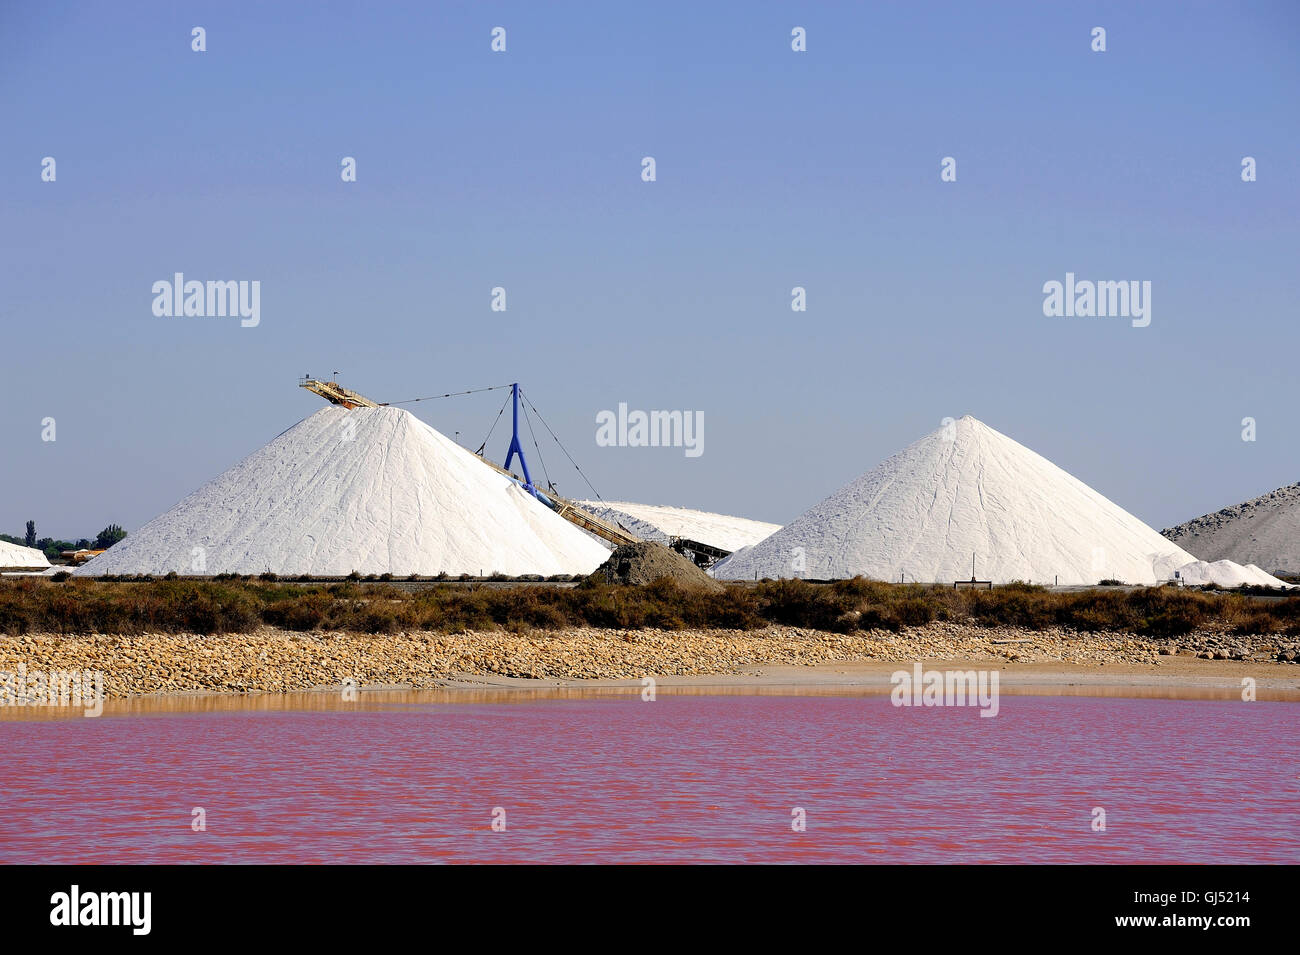 Site operating sea salt saline Aigues-Mortes in the season when a pink algae grow in the water, which gives this - Stock Image